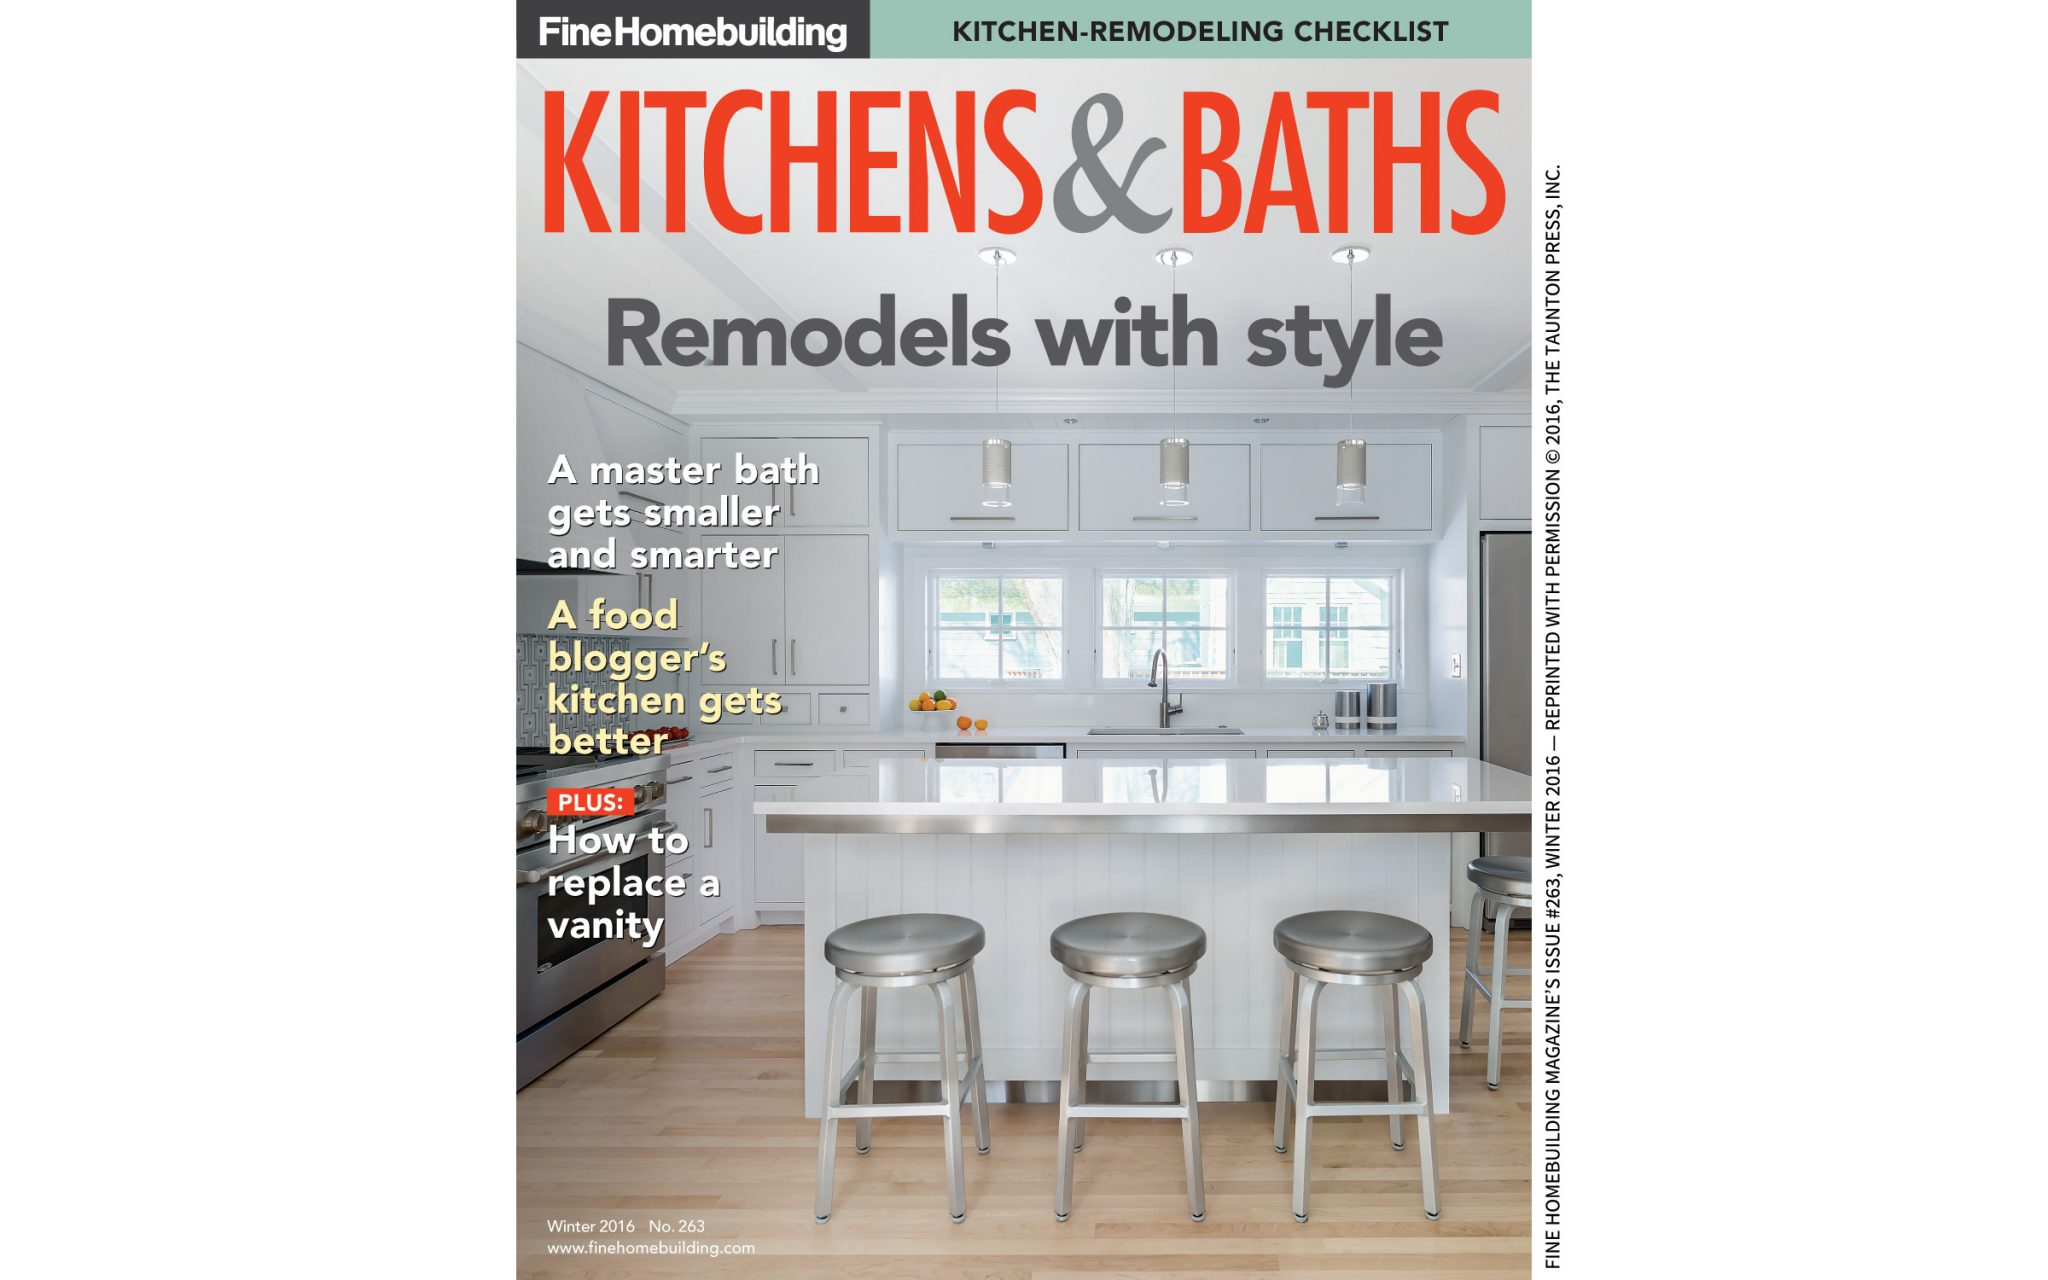 Fine homebuilding kitchens baths elizabeth swartz for Homebuilding com